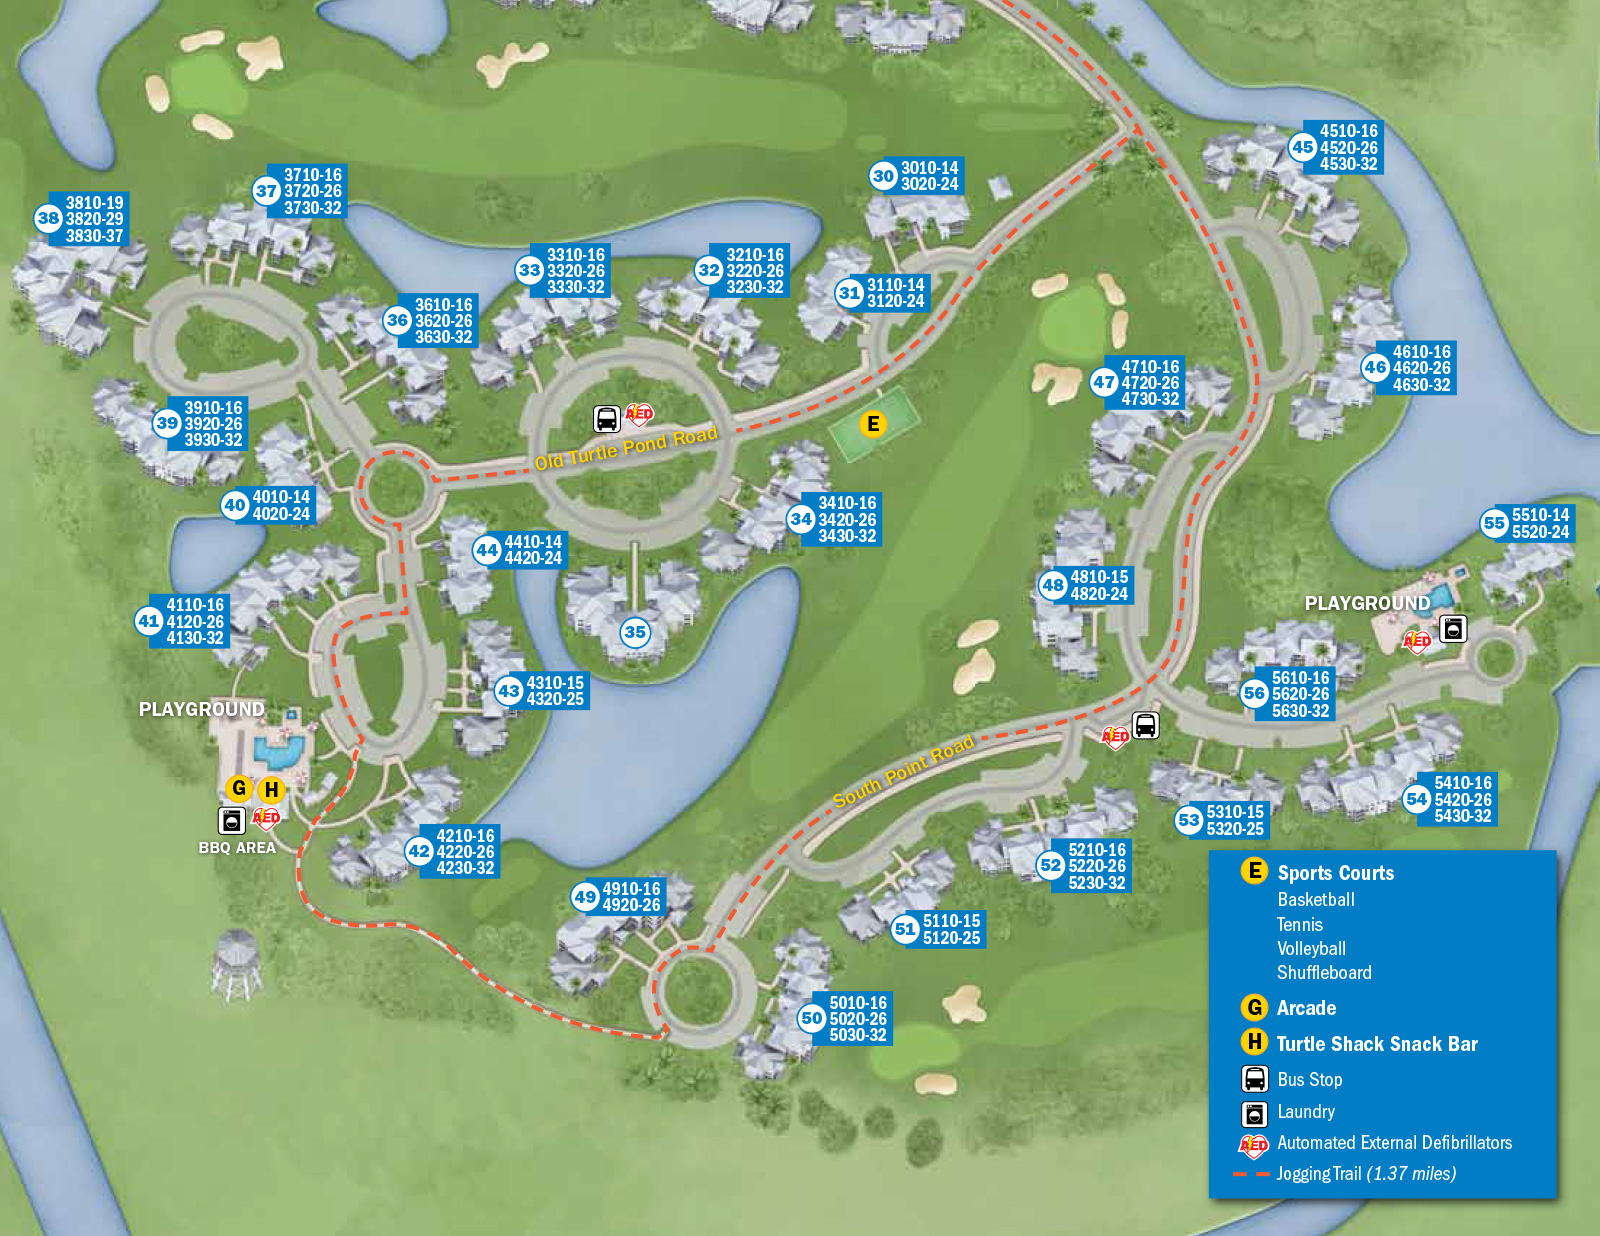 flirting games at the beach hotel disney world map